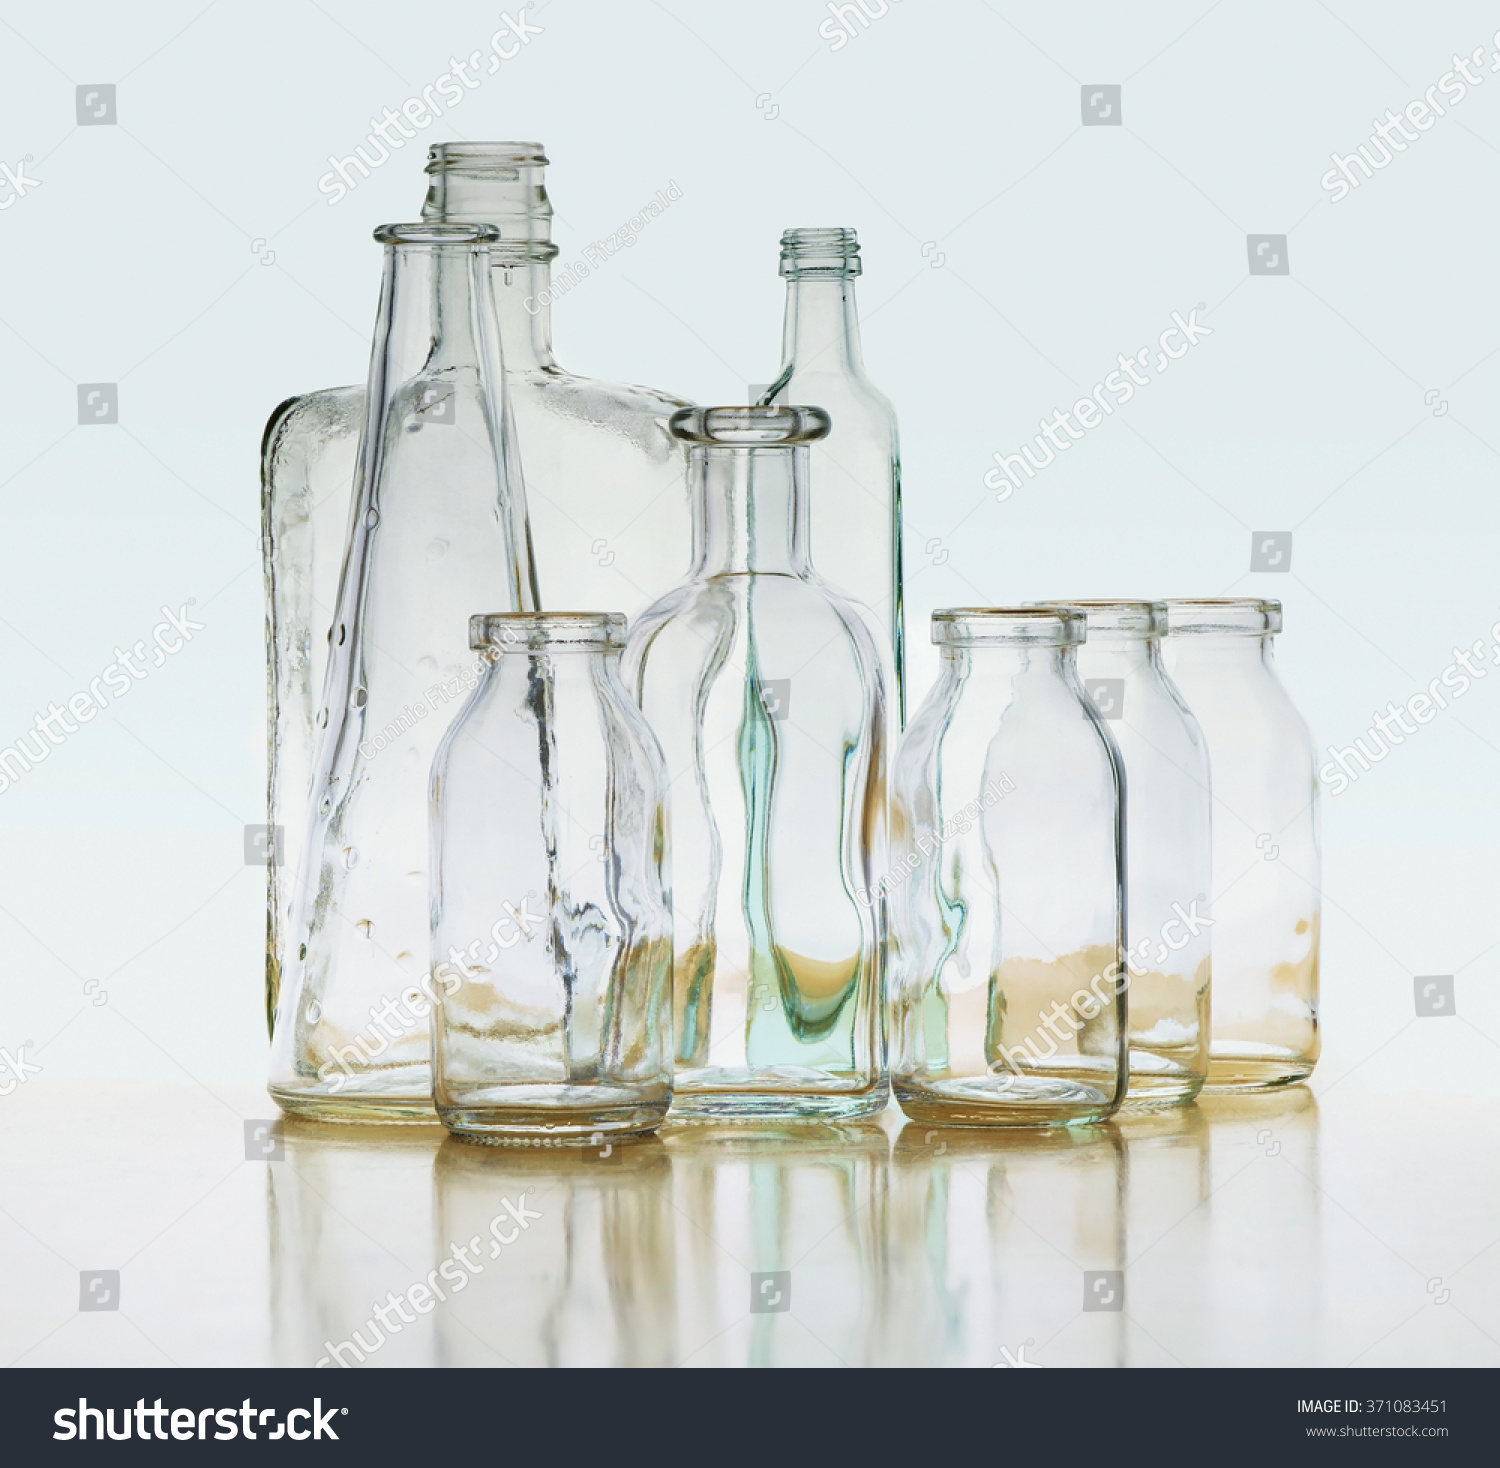 Interesting Bottles See Through Groups Clear Glass Bottles Stock Photo Edit Now